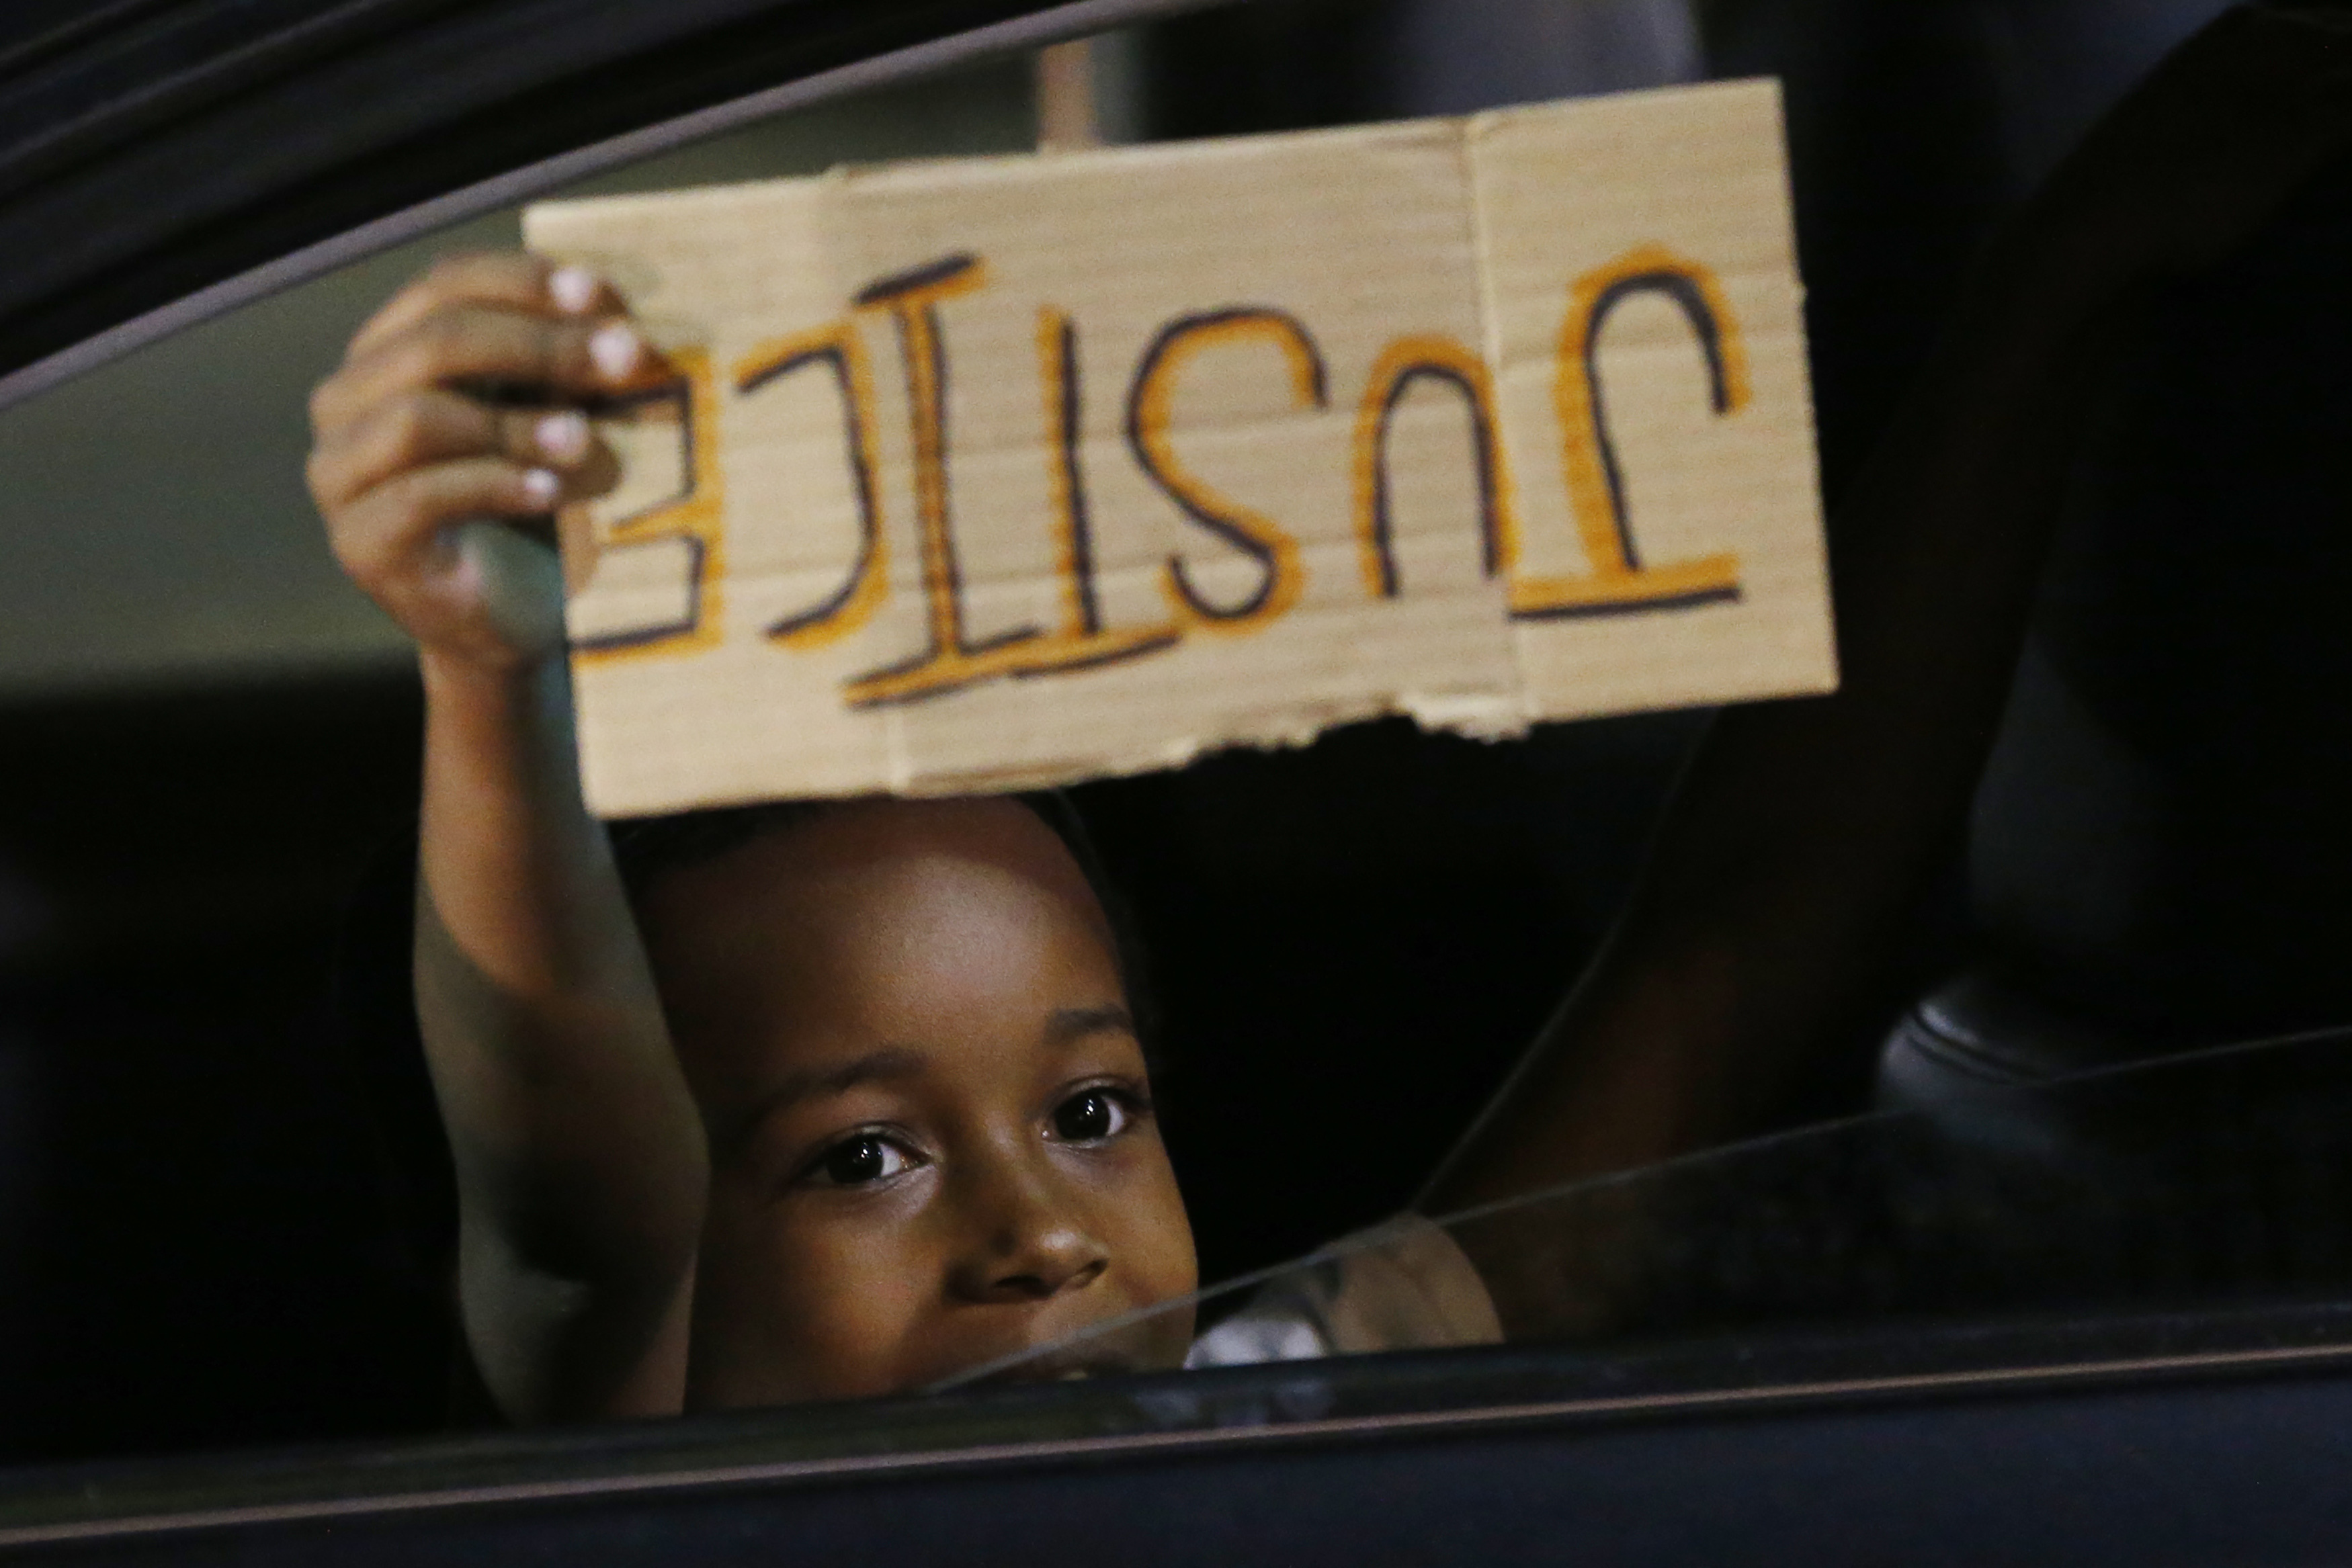 """A young boy holds a """"Justice"""" sign as he peers outside the window of a car passing protesters marching through downtown for a third night of unrest Sunday May 31, 2020, in Richmond, Va. Gov. Ralph Northam issued a curfew for this evening. (AP Photo/Steve Helber)"""